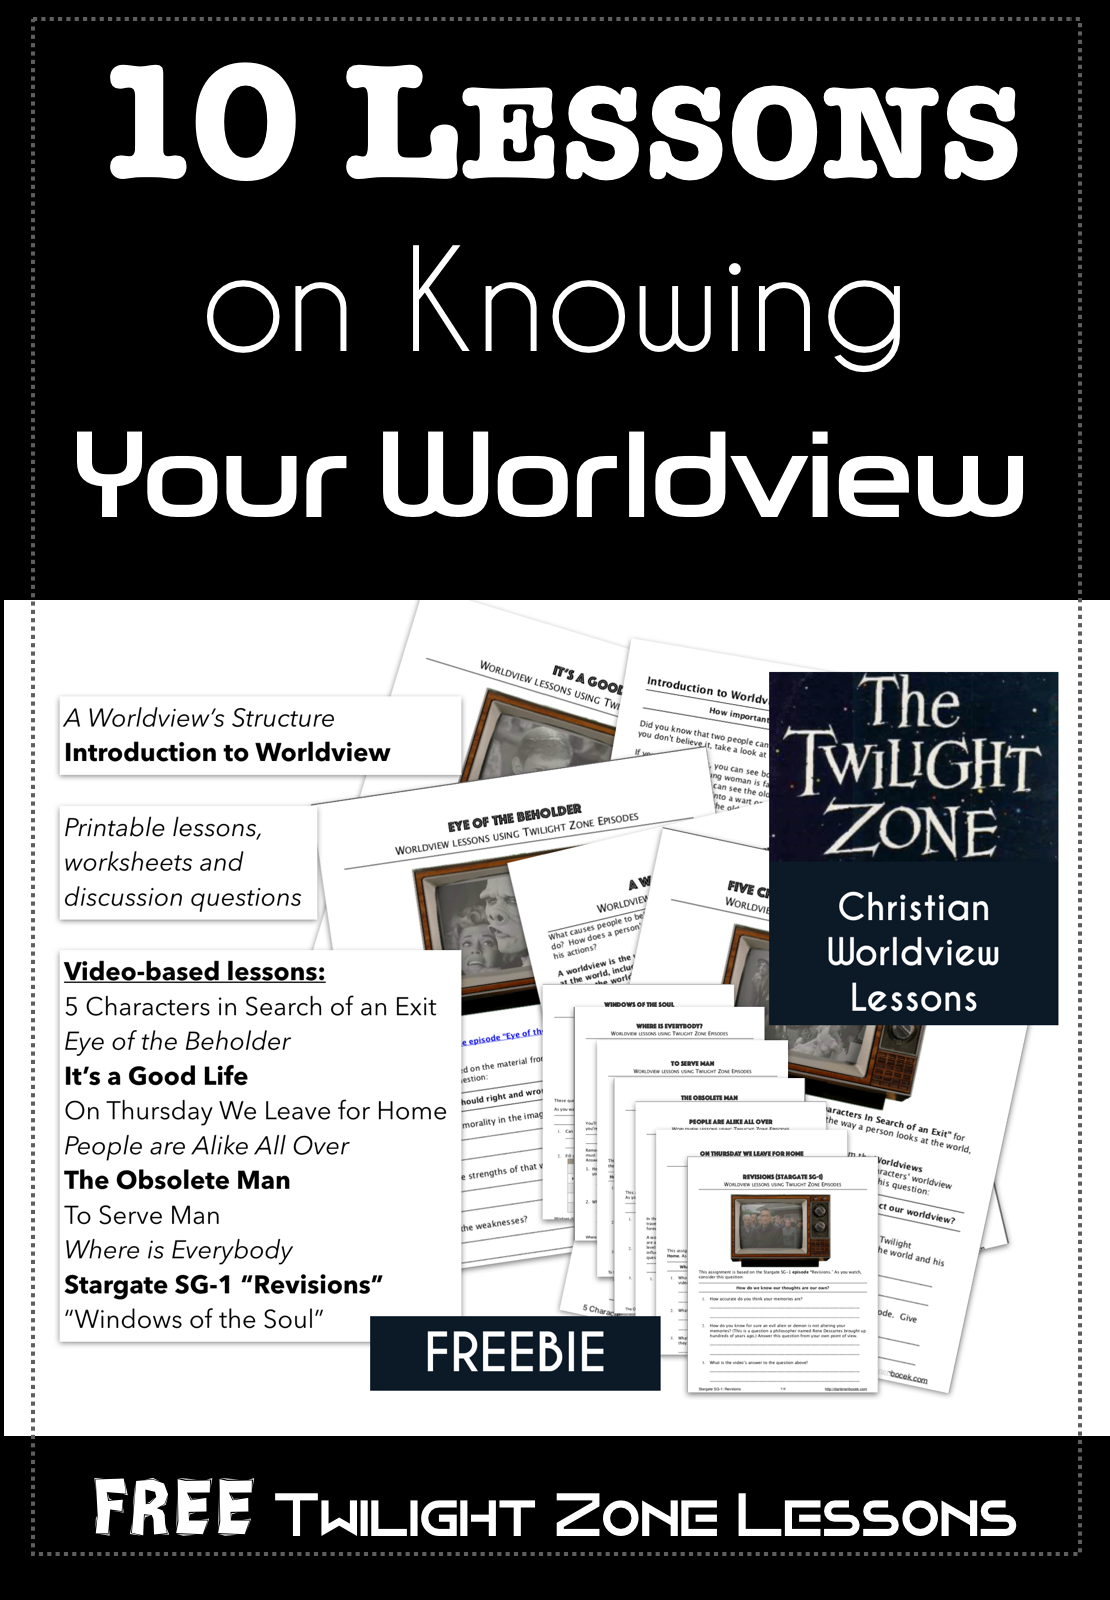 Twilight Zone Worldview Lessons – Darlene N  Bocek